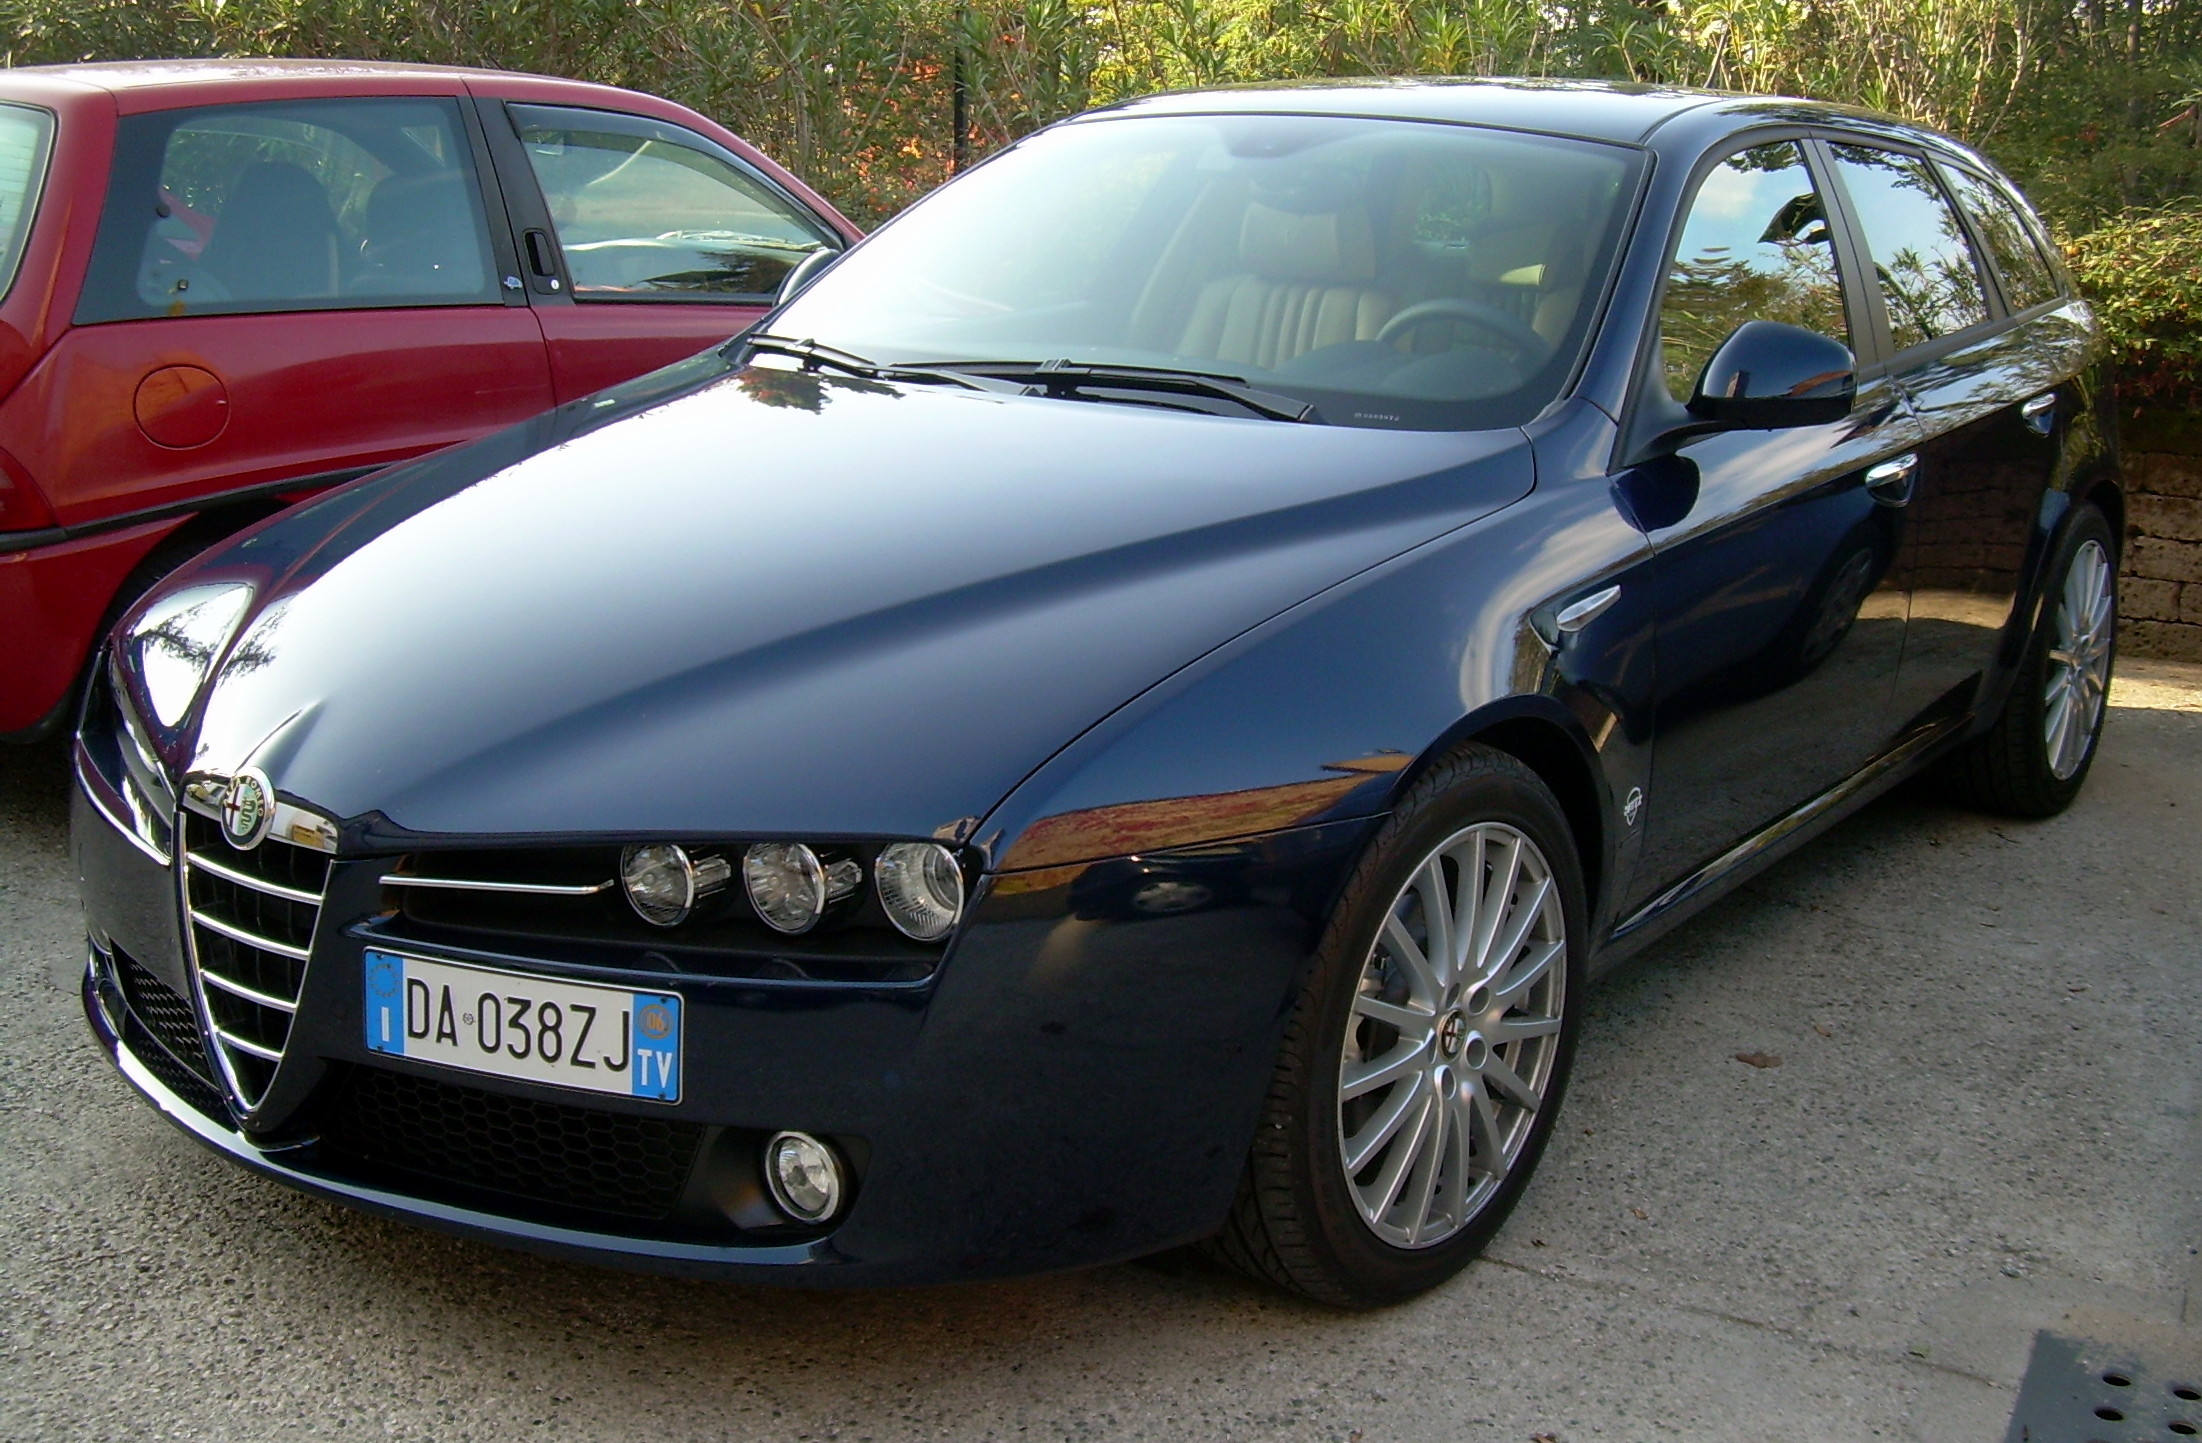 Alfa romeo 159 photo - 3